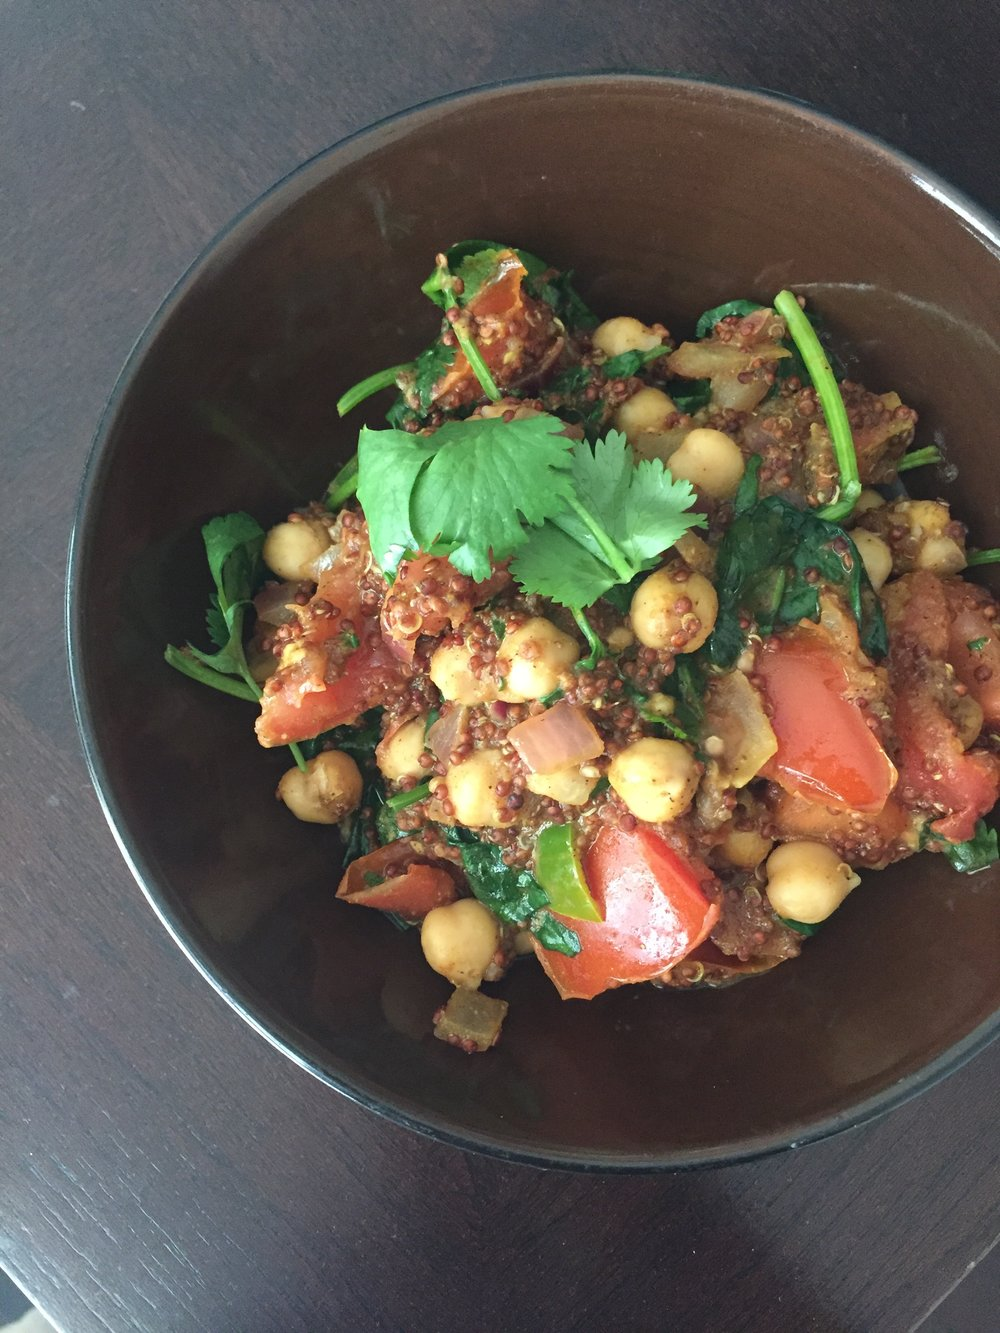 tish-wonders-chickpea-one-pot-dish-shamira-west.JPG